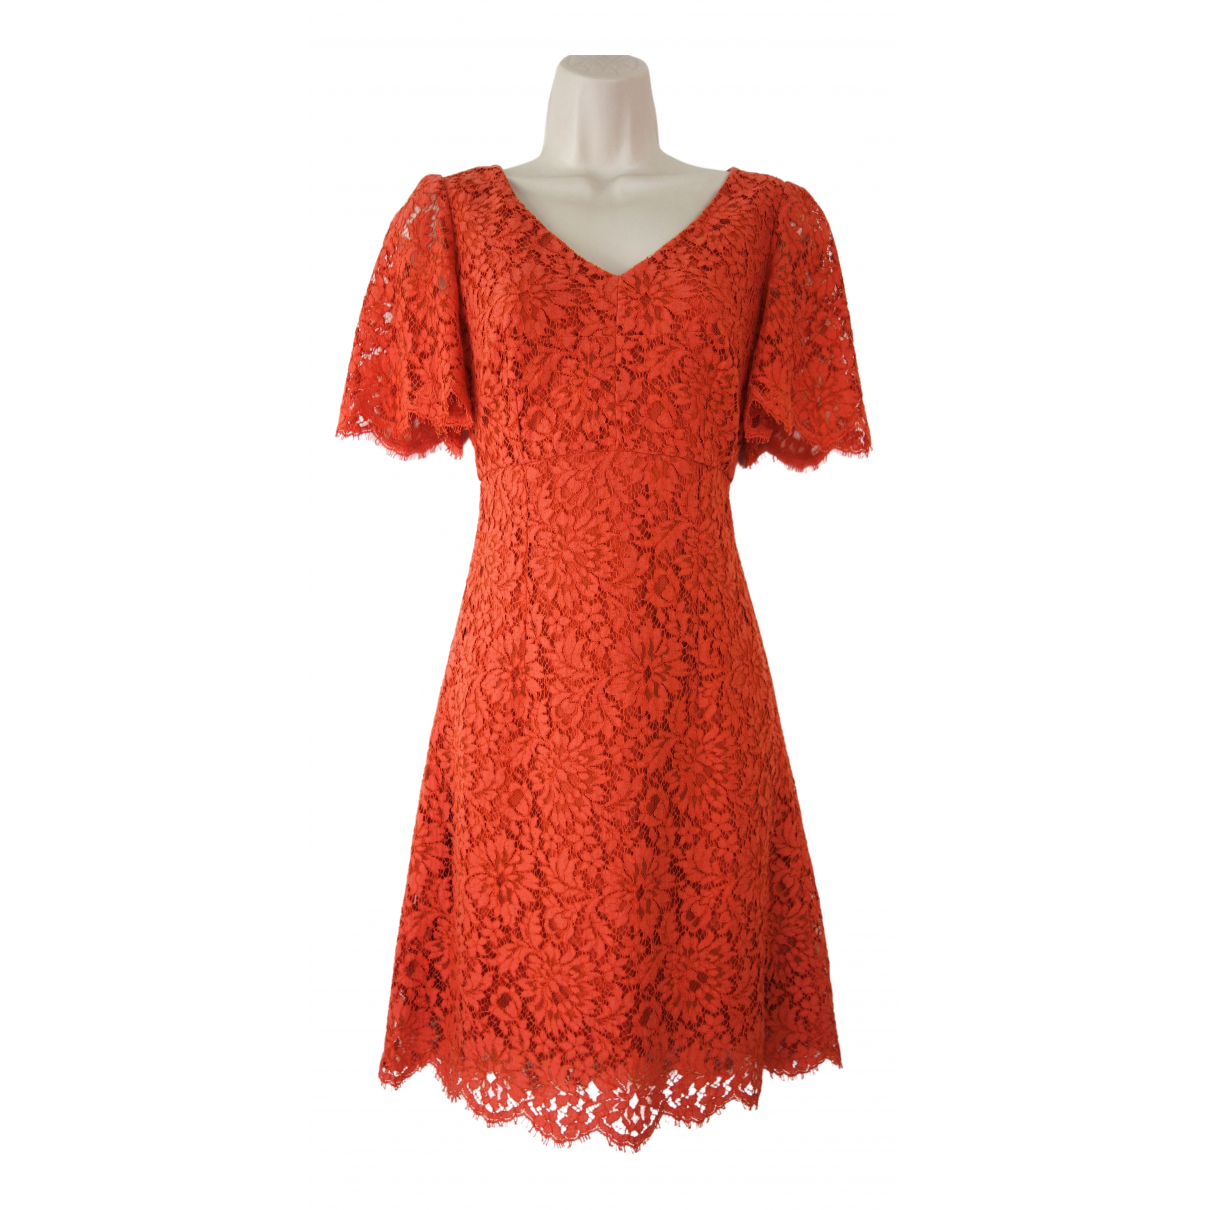 Dolce & Gabbana \N Red Lace dress for Women S International